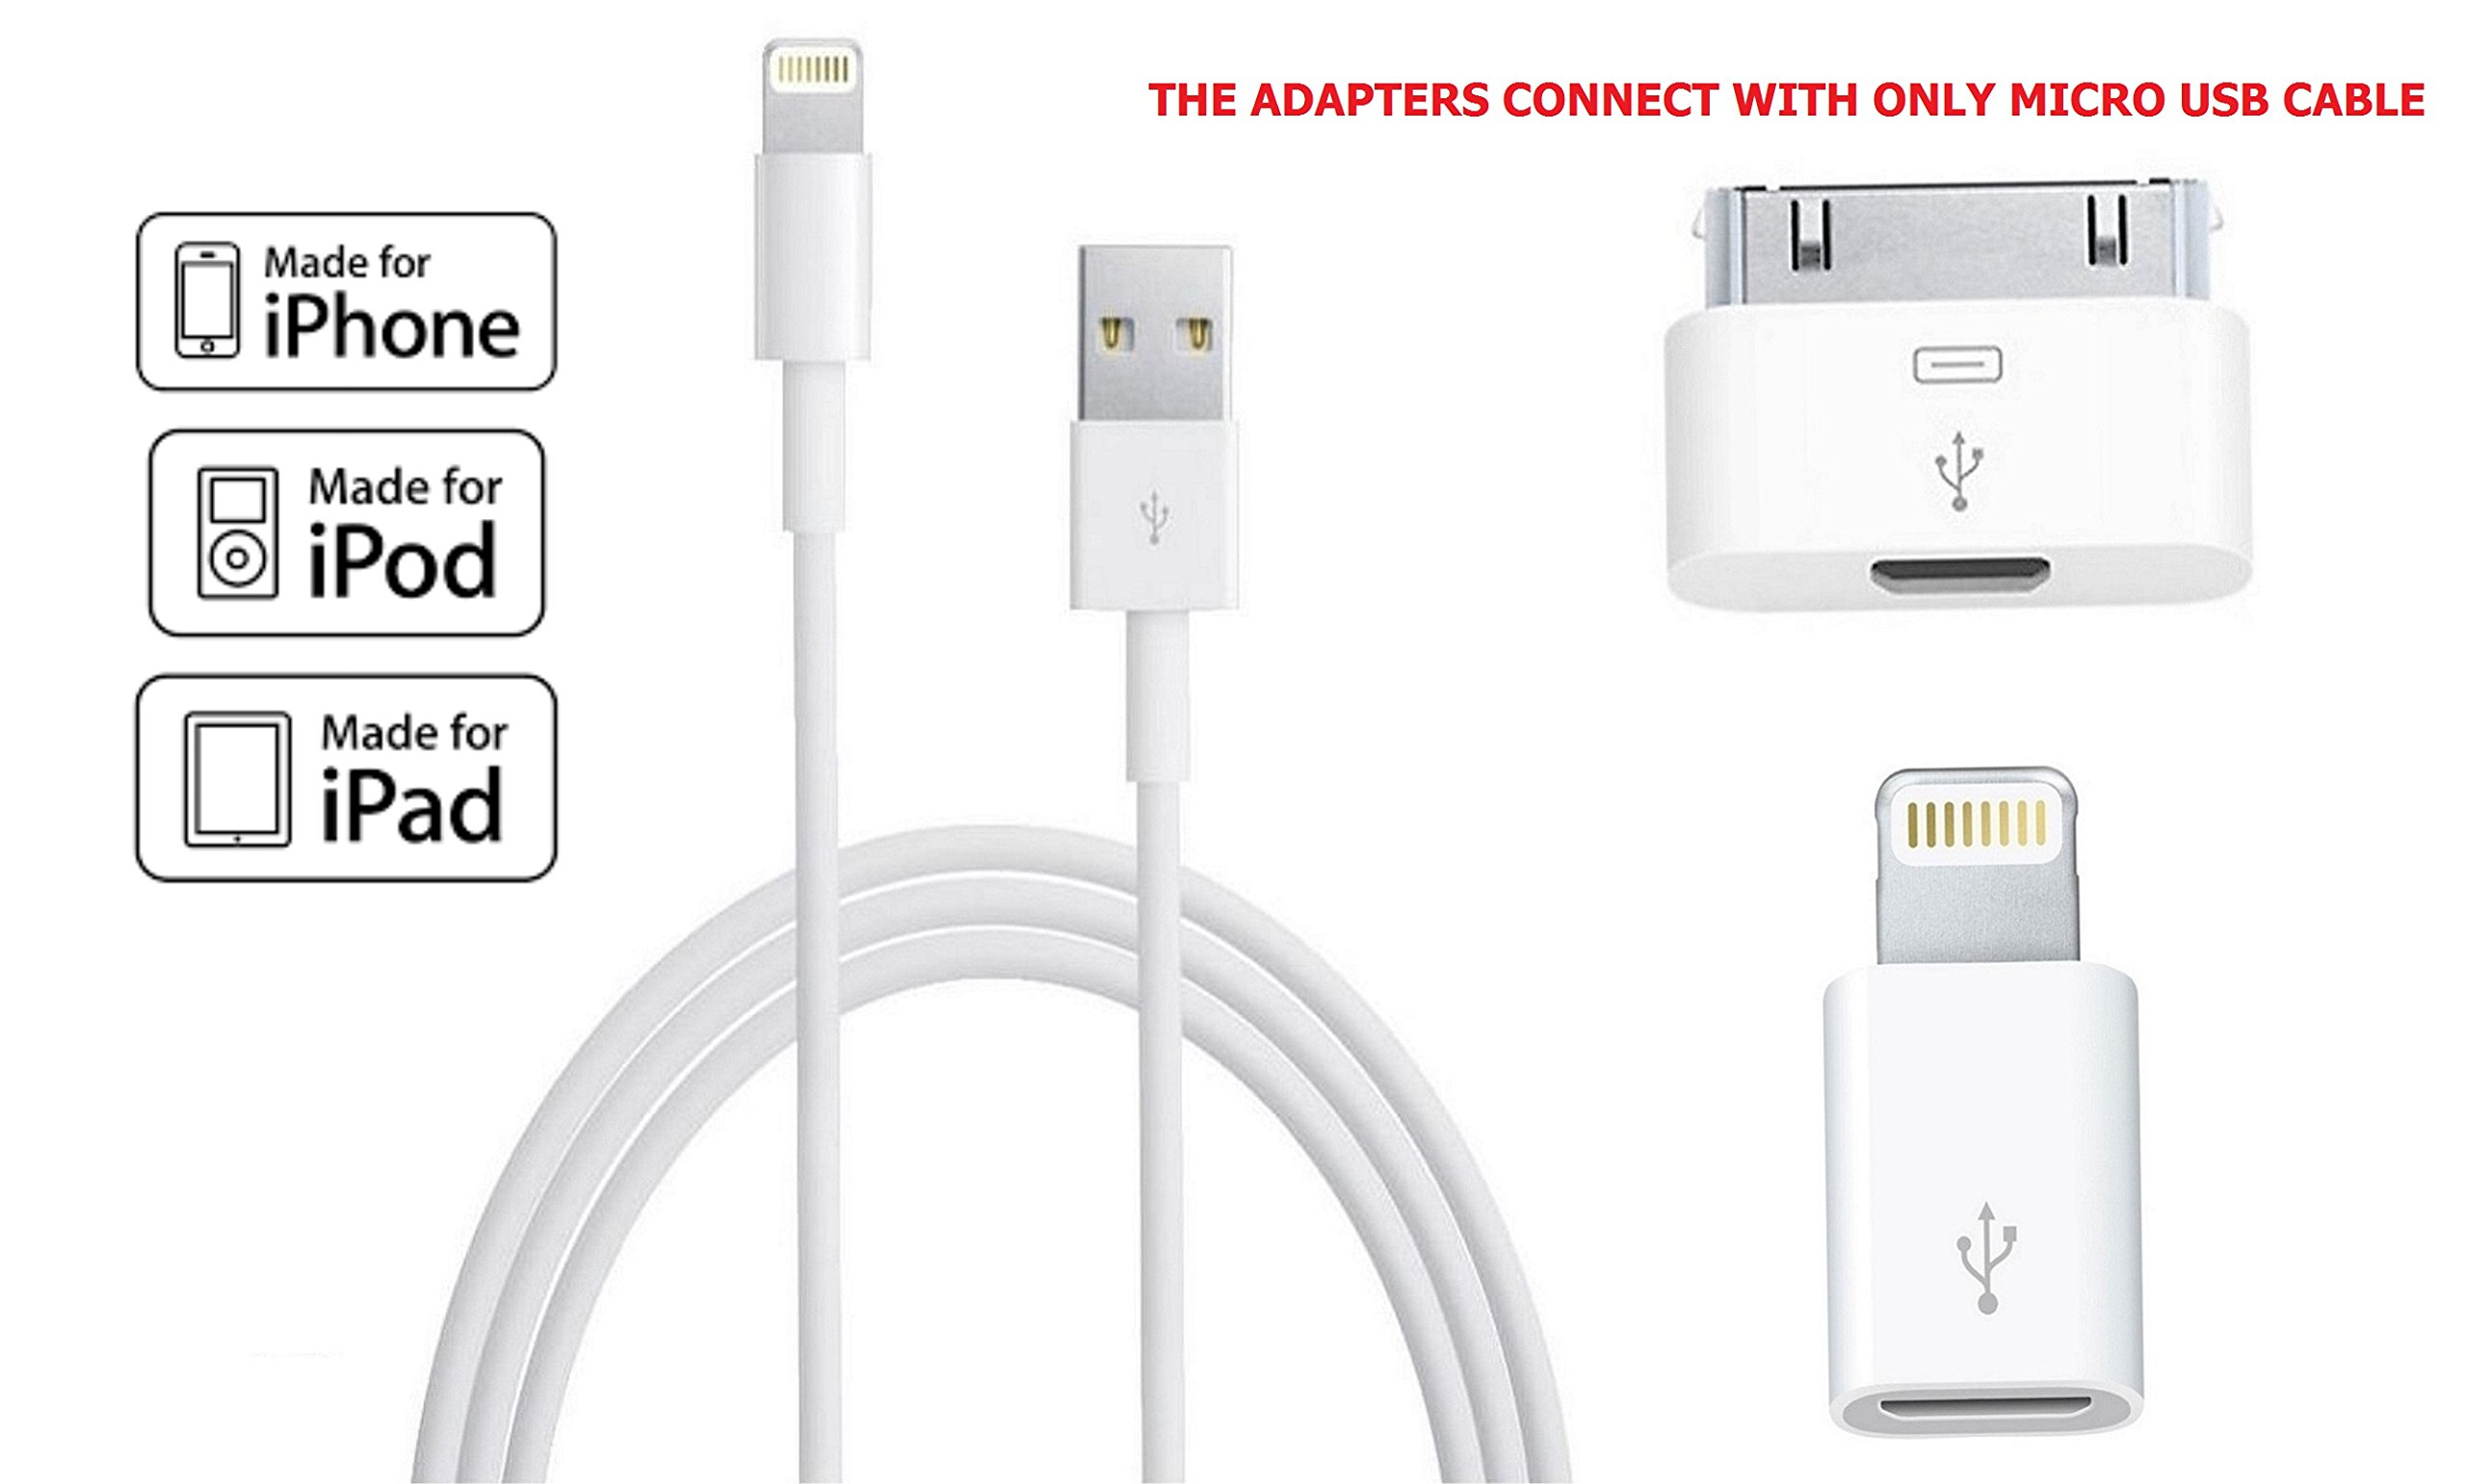 Apple MFI Certified Lightning Cable, Smartgik® Lightning to USB Cable 3ft; Micro Usb to 8-pin Adapter & 30pin to Micro Usb Charger for Apple Iphone 4 5 5s 5c 6 6s Plus Ipod Ipad Mini Air 2 3 4 iOS9